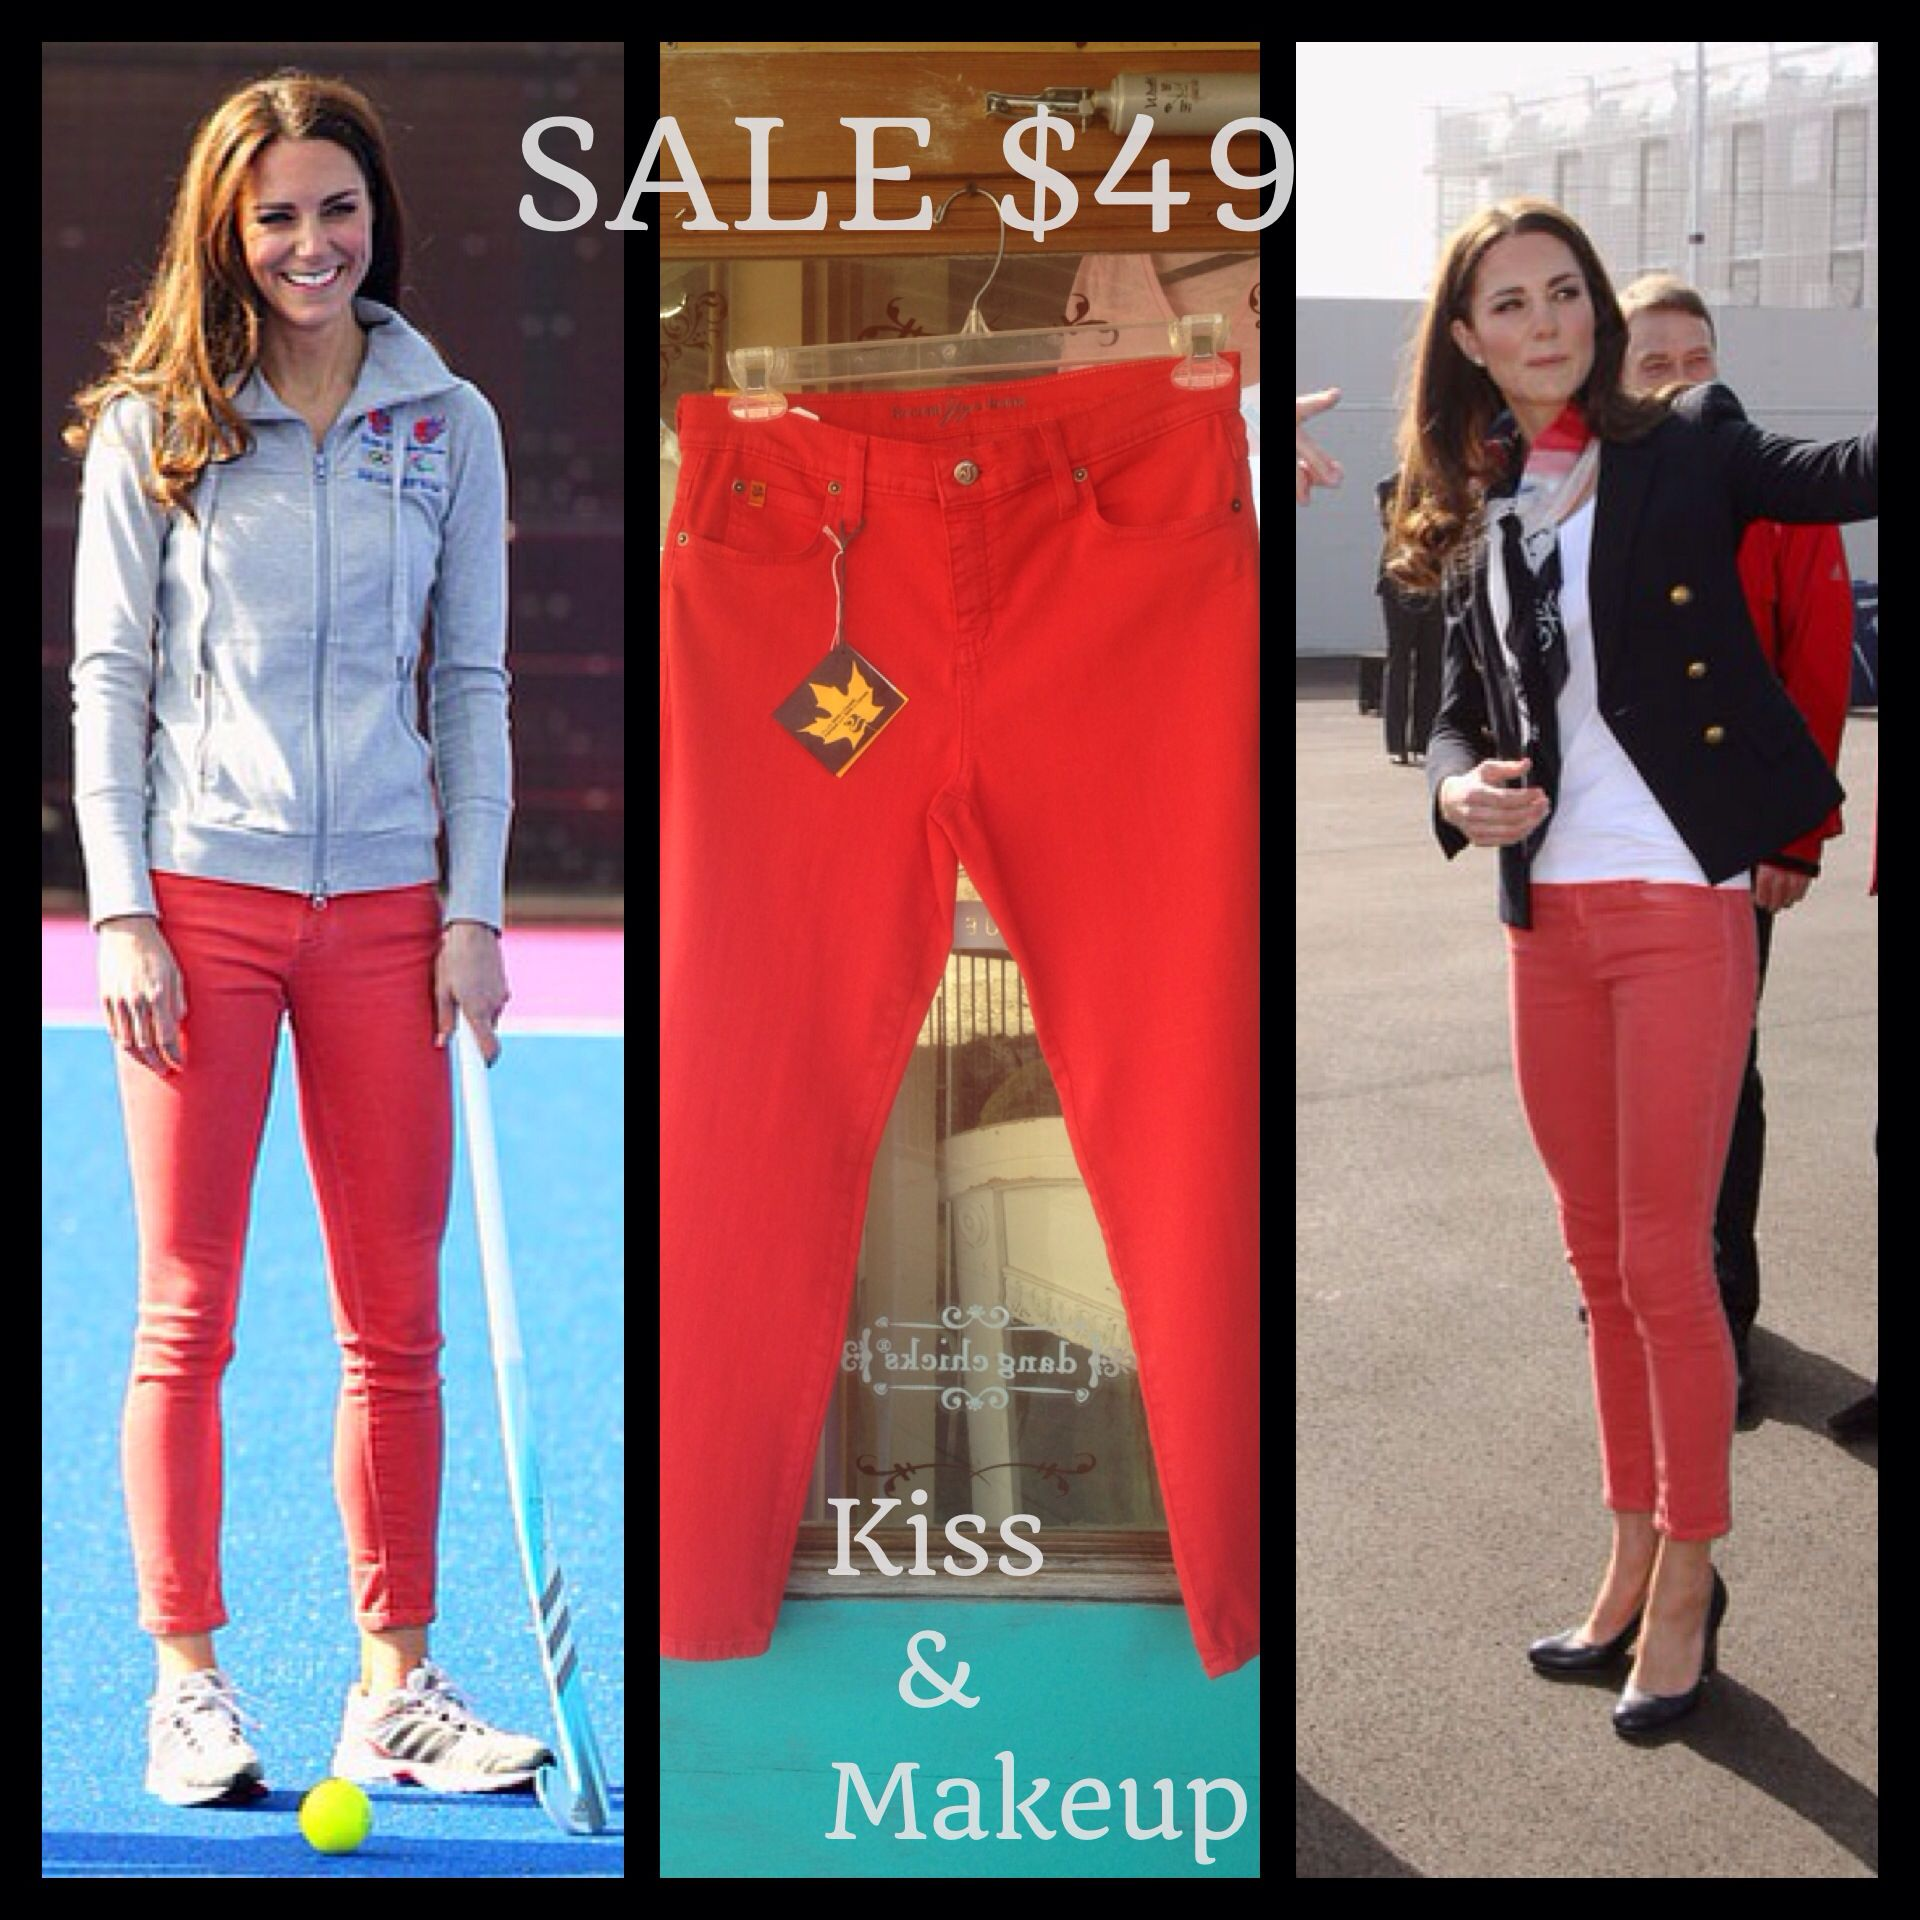 Coral yoga jeans $49 Call 972-542-6785 to order or email us at Kissandmakeupboutiqueandsalon@yahoo.com